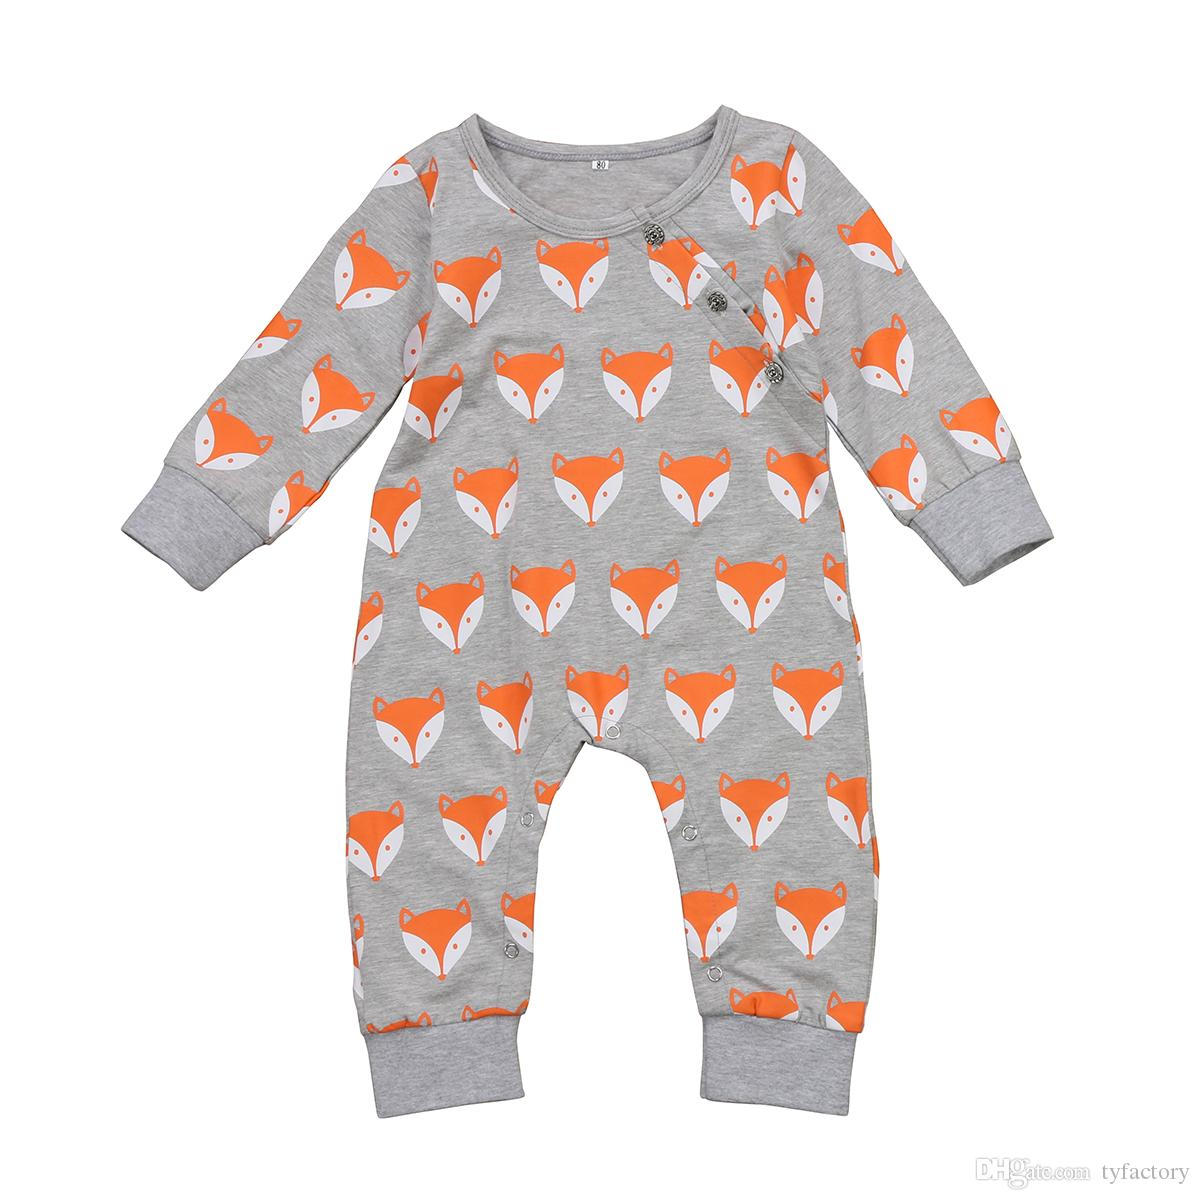 Toddler infant baby rompers fox head jumpsuits newborn boys girls bodysuits outfits one piece children cotton kids clothing long sleeve